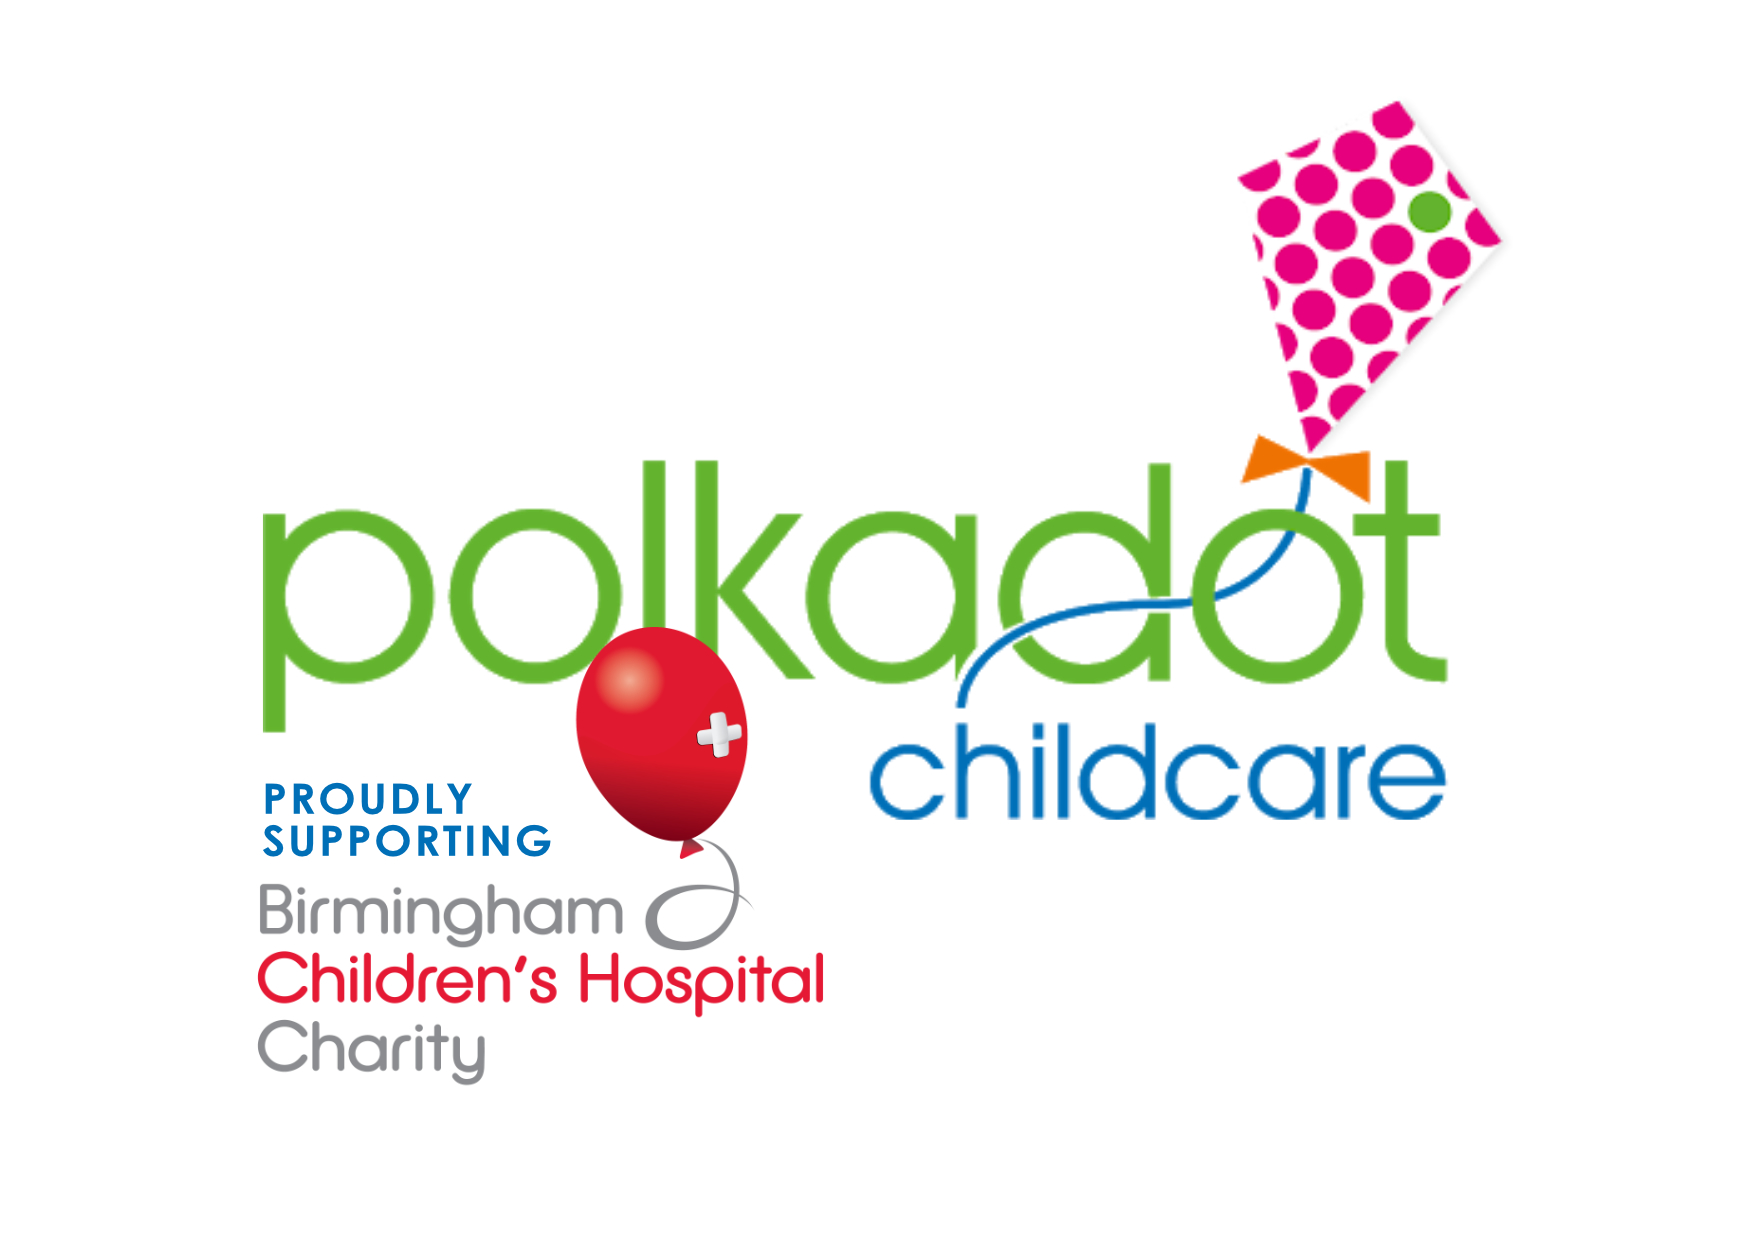 Polkadot Childcare - Proudly Supporting Birmingham Children's Hospital Charity